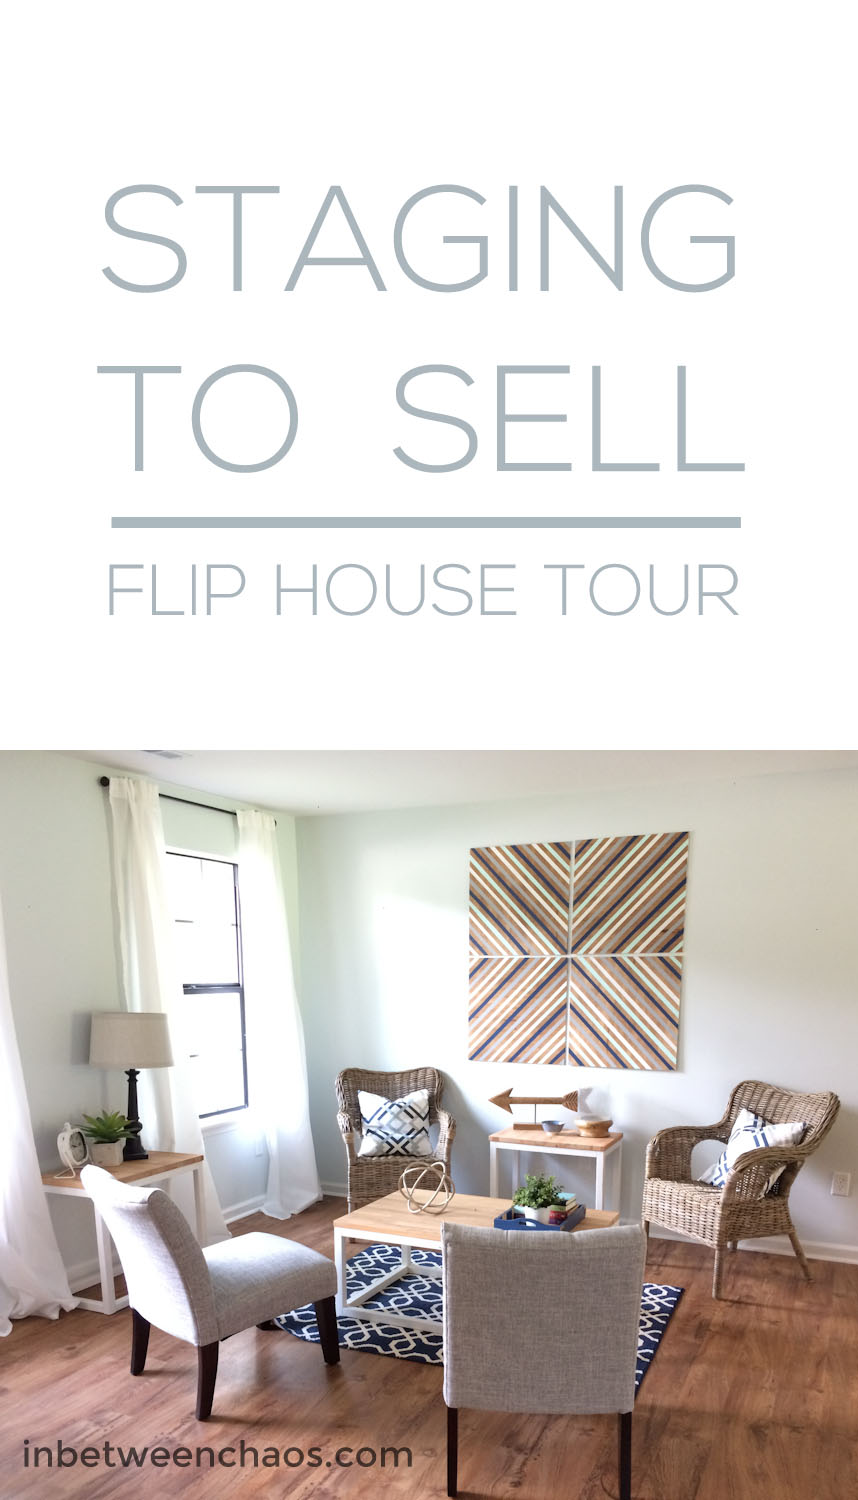 Staging an empty Flip House | inbetweenchaos.com